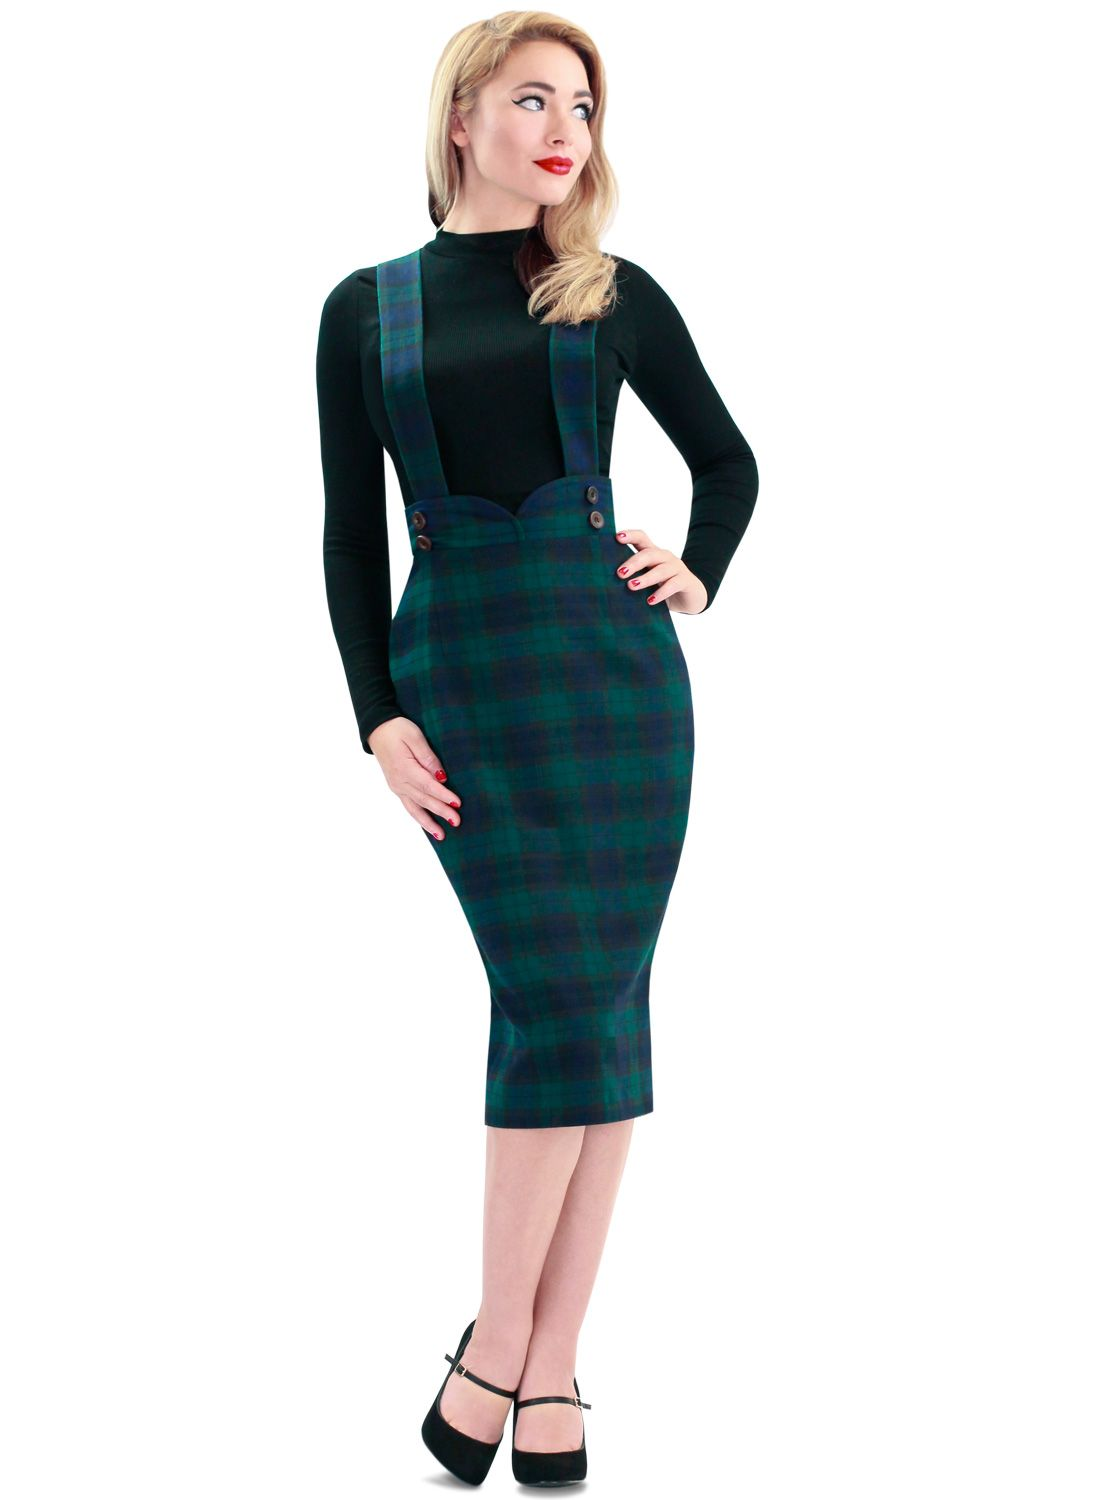 Dixie Doll\' Black Watch Tartan 50s Style Pencil Skirt